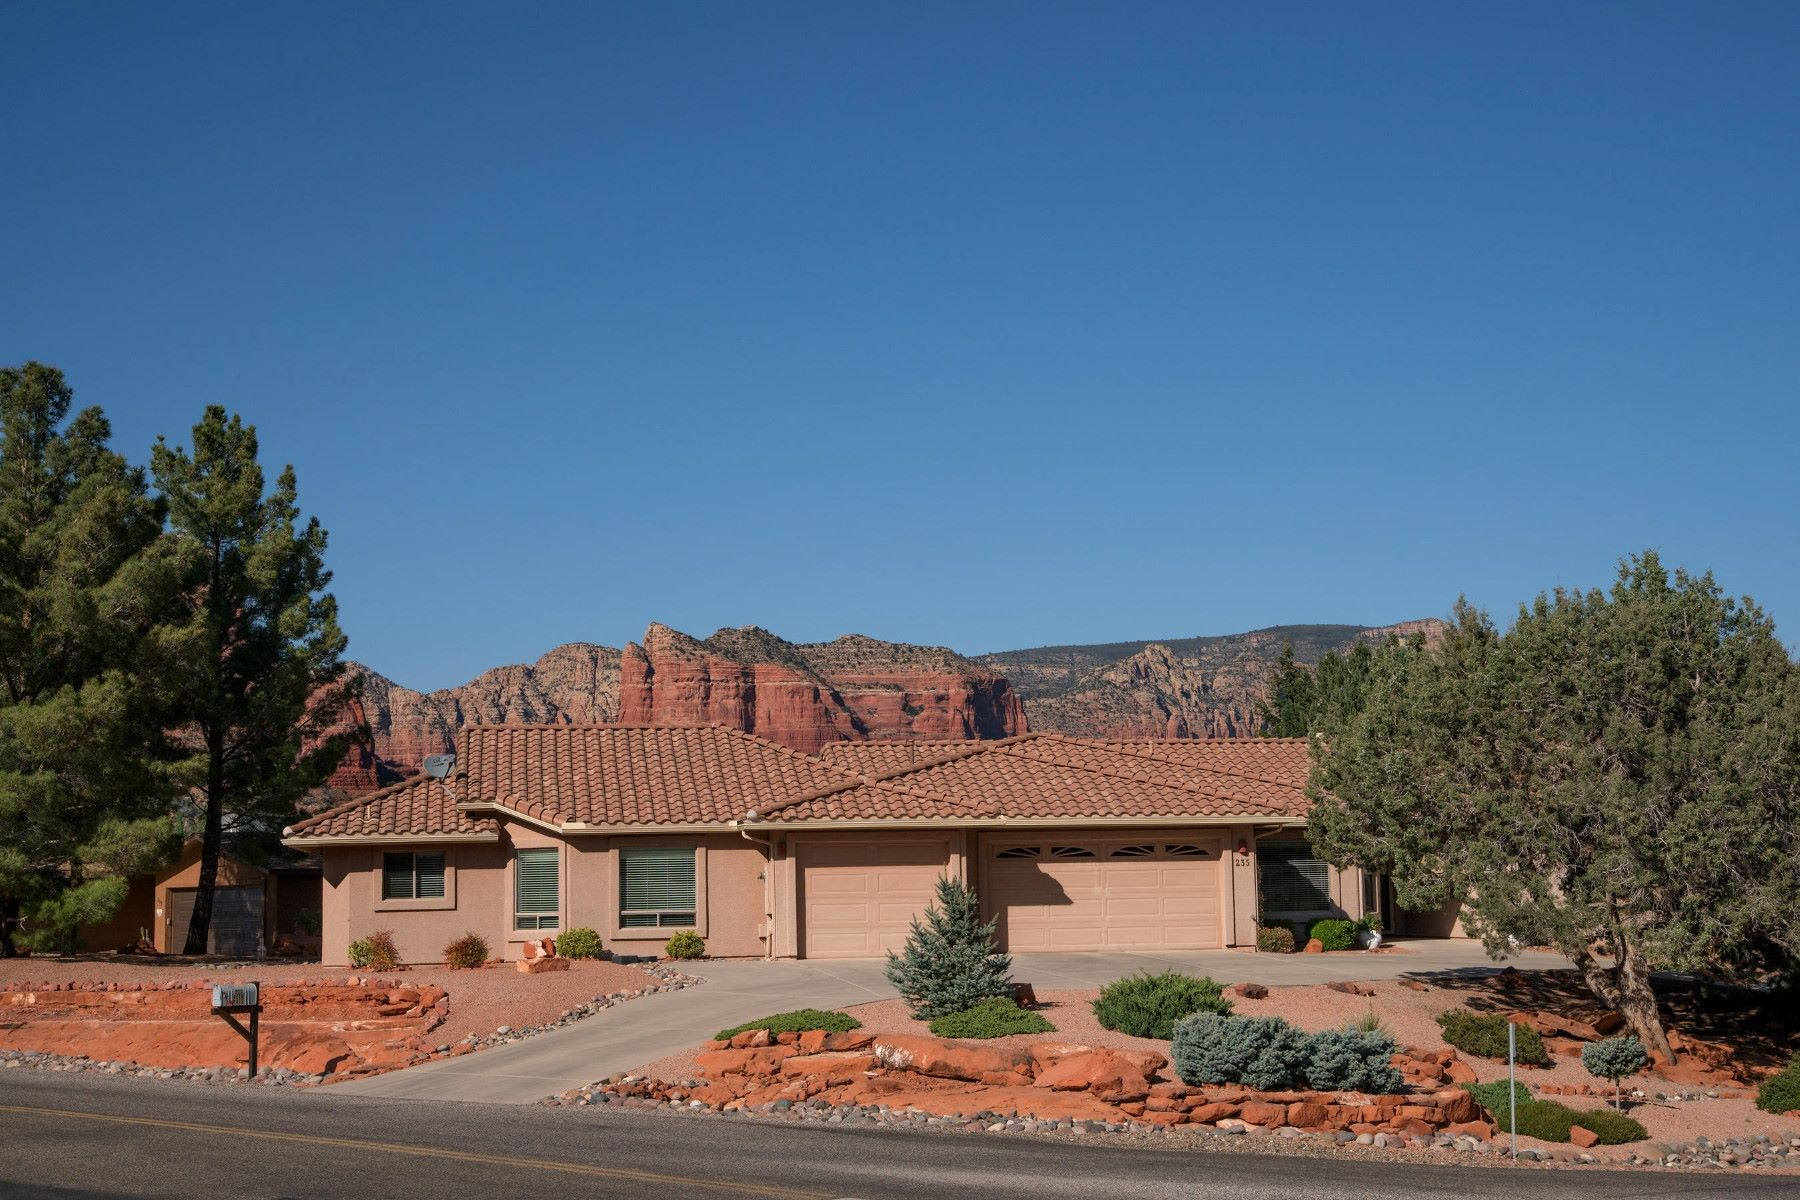 Casa Unifamiliar por un Venta en Lovely single level home with panoramic view 235 Deer Pass Drive Sedona, Arizona, 86351 Estados Unidos